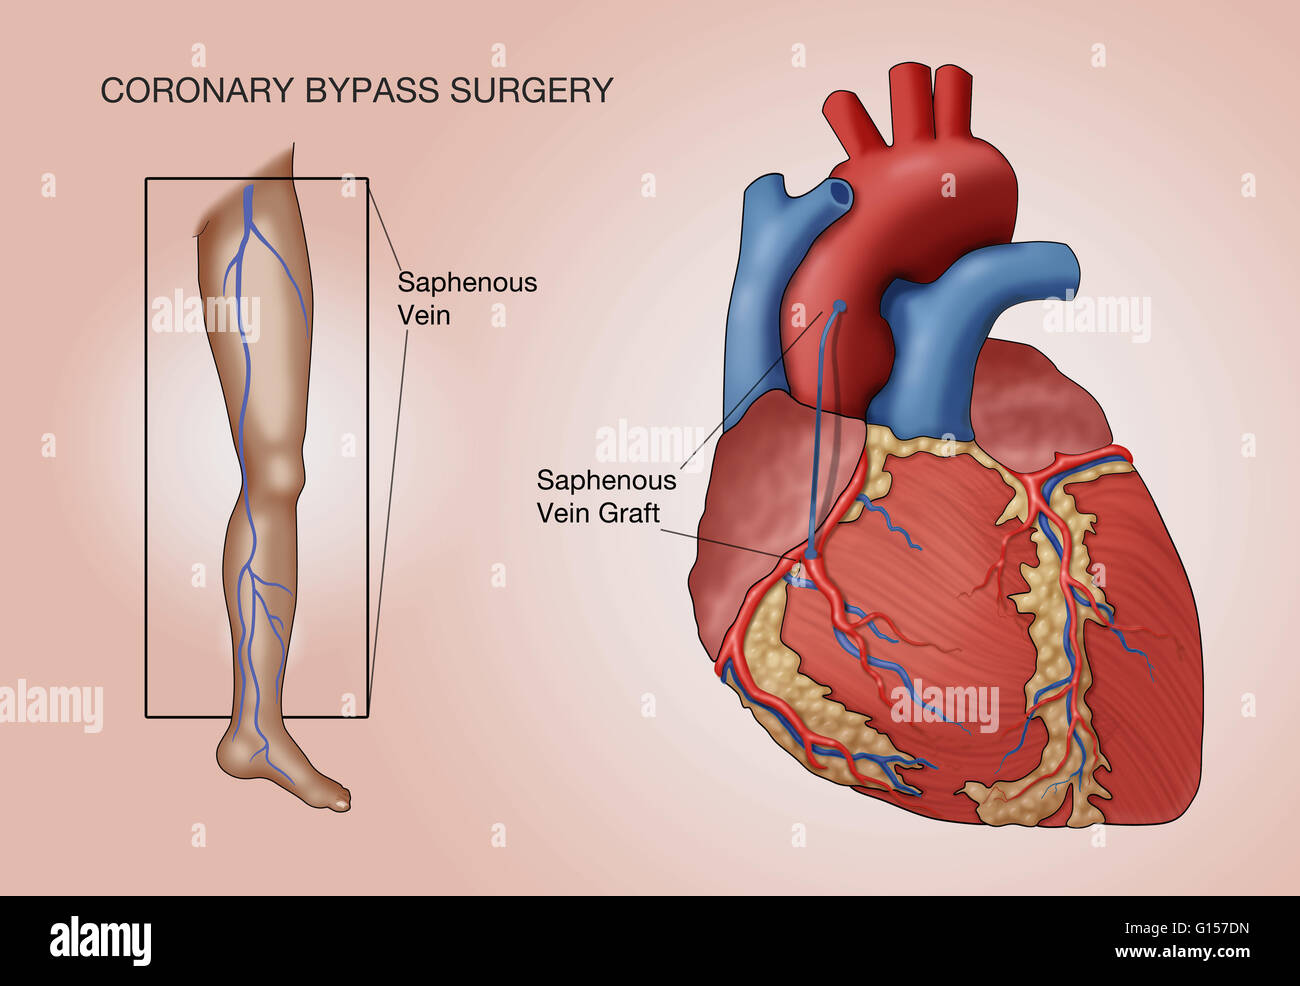 Coronary Bypass Surgery Labeled Illustration A Vessel From The